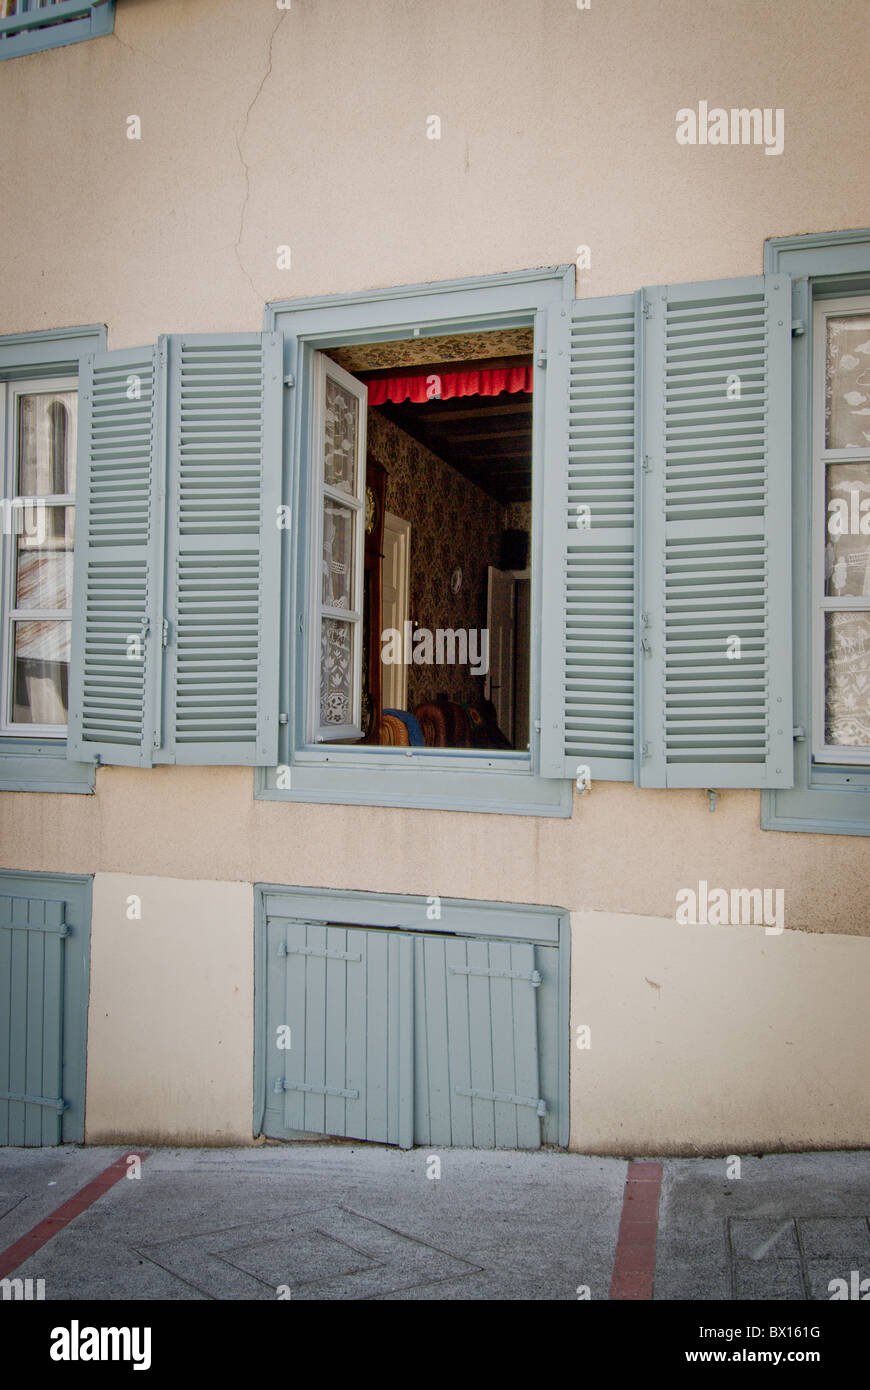 Pyreneeian house on steep street with Louvre shuttered windows - Stock Image